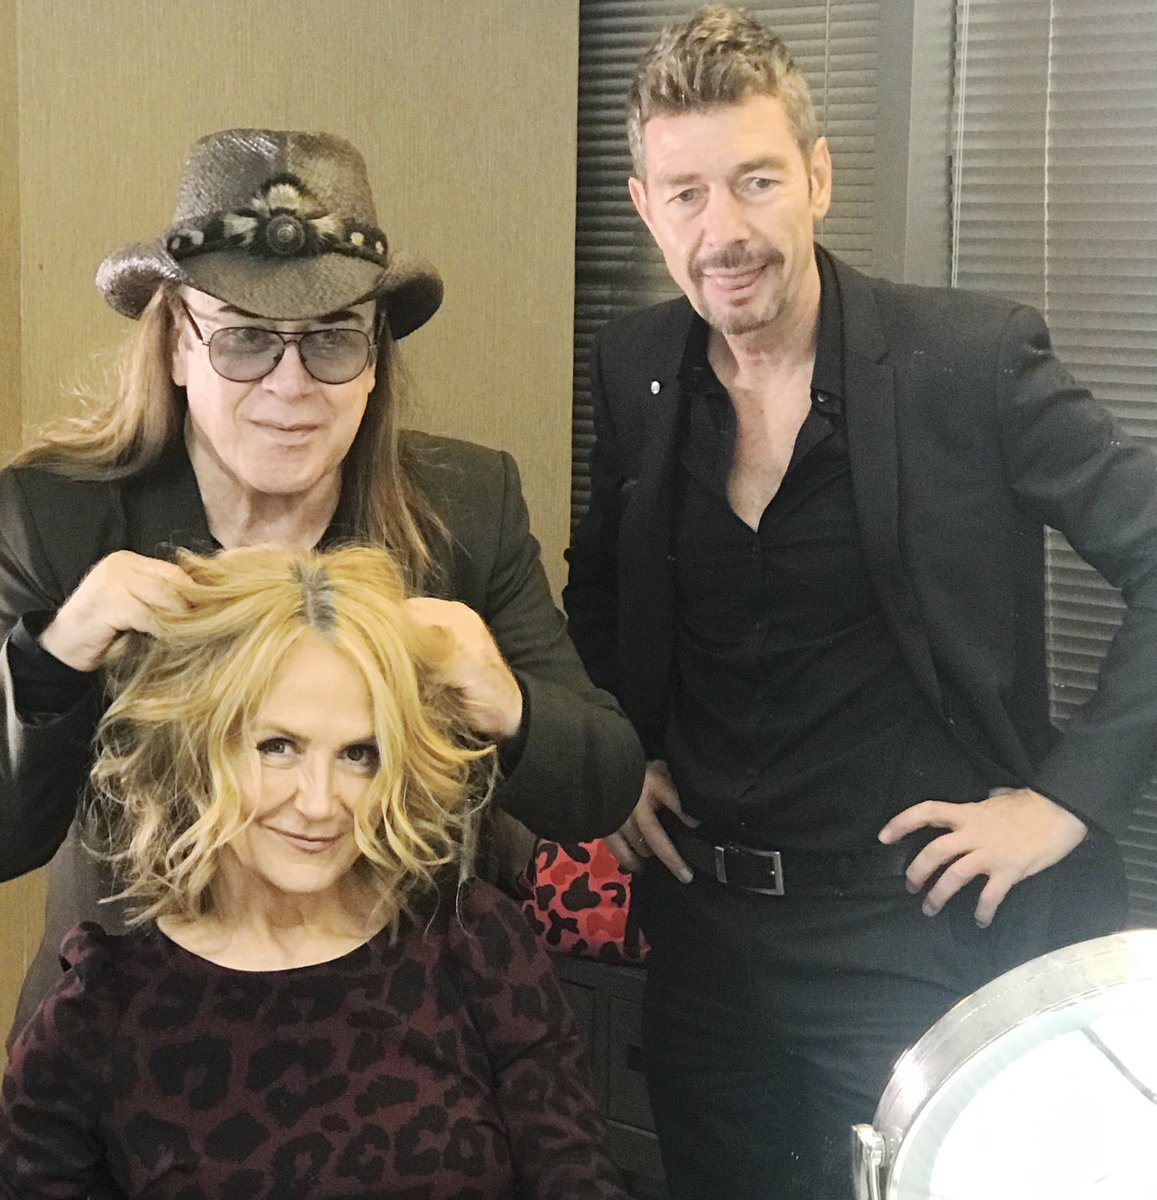 """People ask about the hardest part of my job & I say """"my hair! But having celebrity  hair stylist Jose Eber  would put a smile on my face every morning - - - I'll be hosting Eber at his new Jose Eber Plano tonight at 6:00 and I hope to meet you there! #goodmorningtexas #hairstyles"""